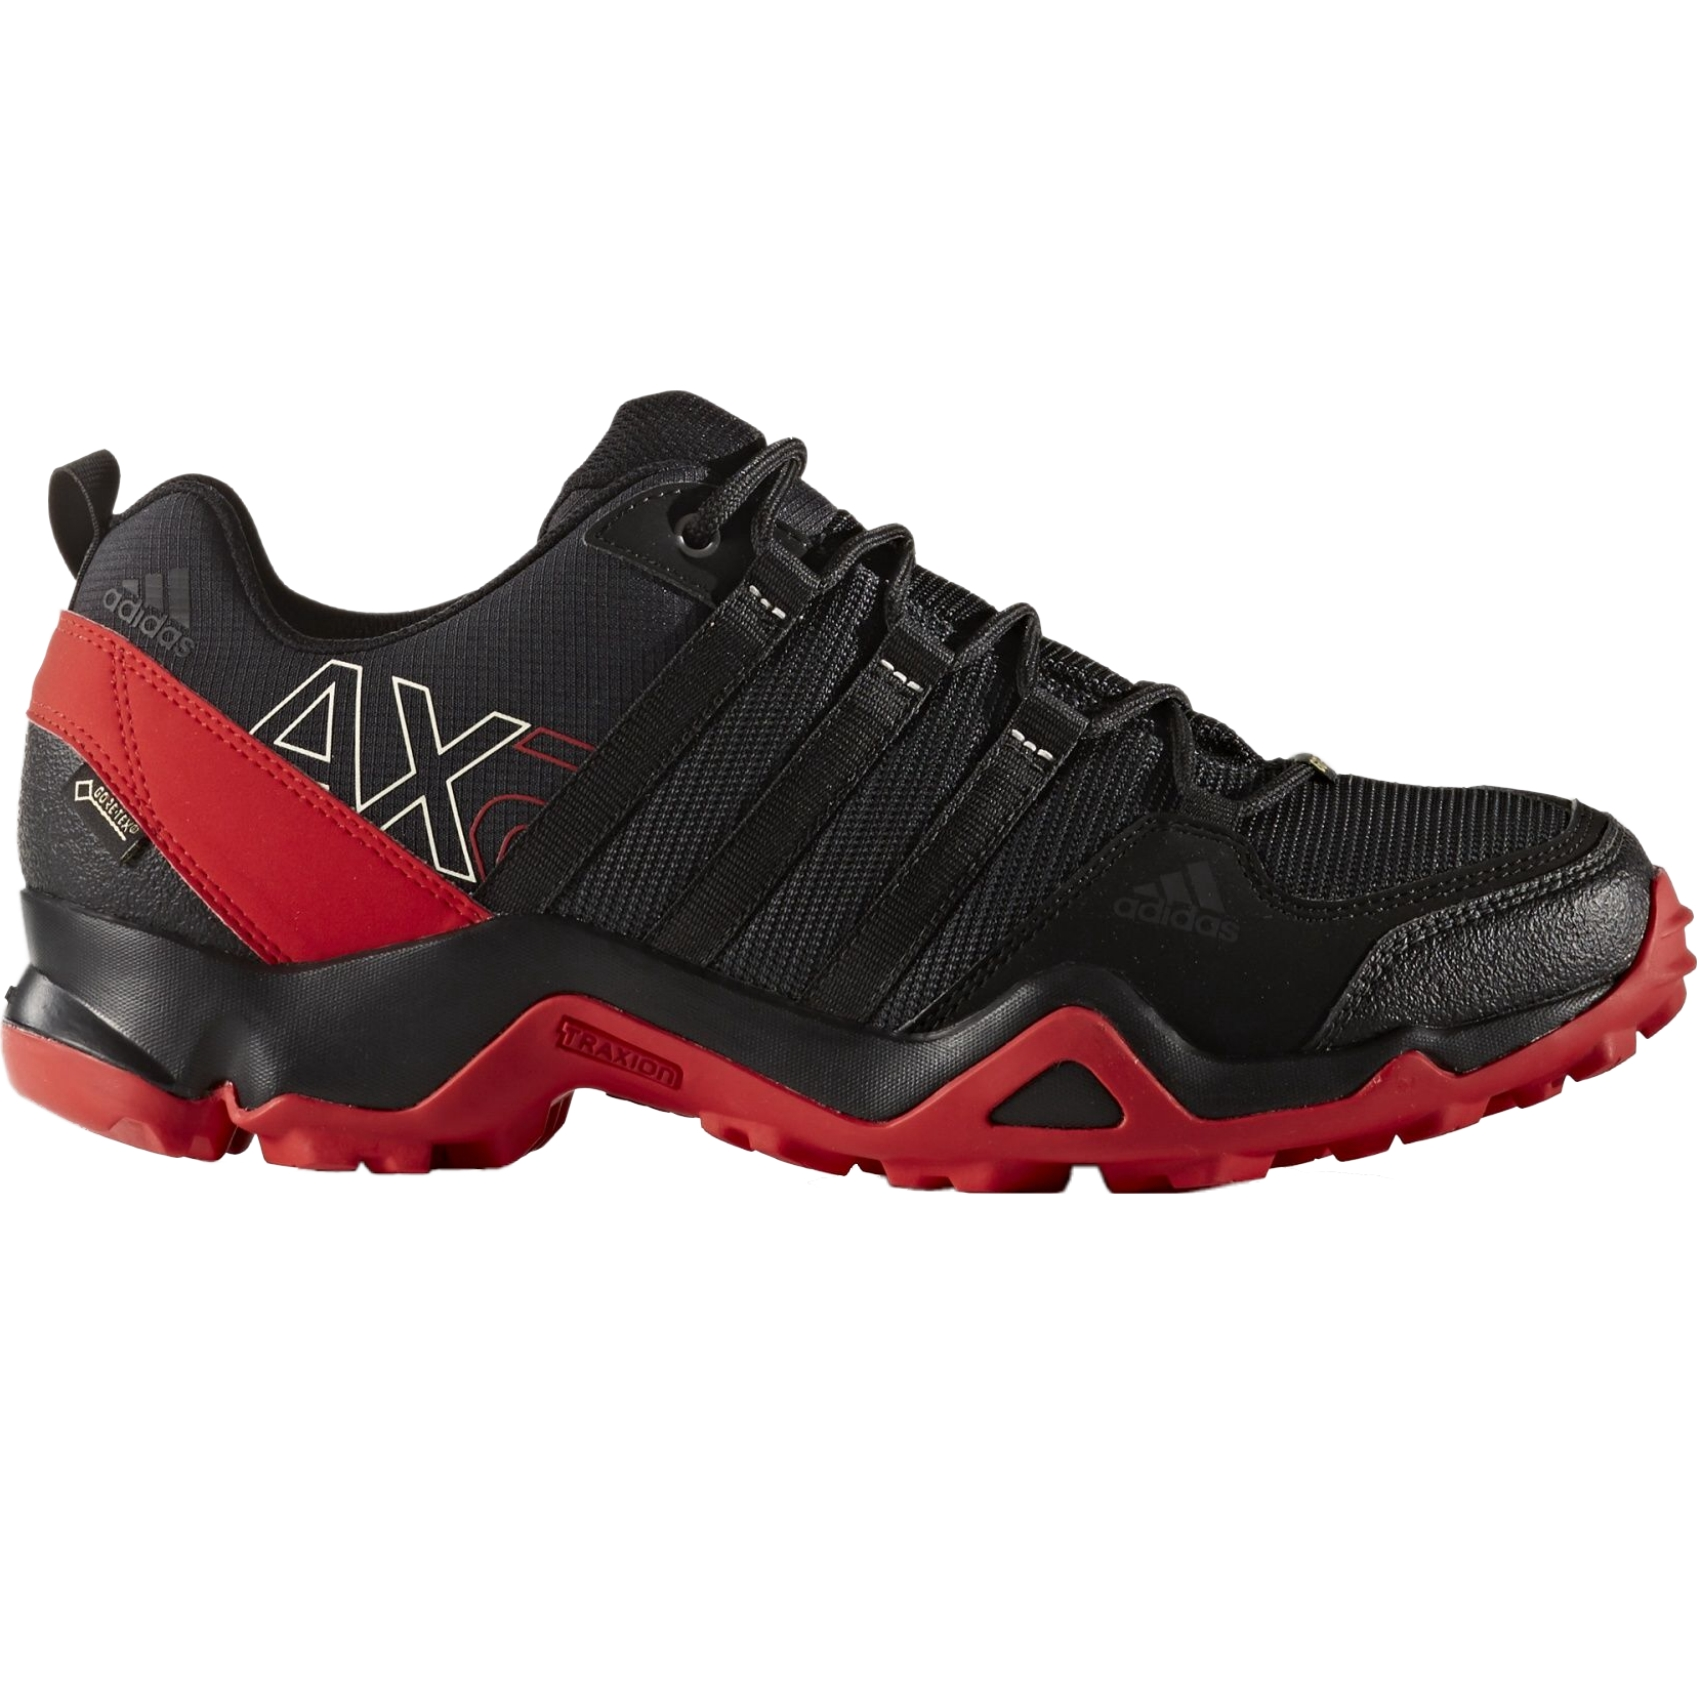 adidas ax 2 0 gtx gore tex schuhe wanderschuhe. Black Bedroom Furniture Sets. Home Design Ideas